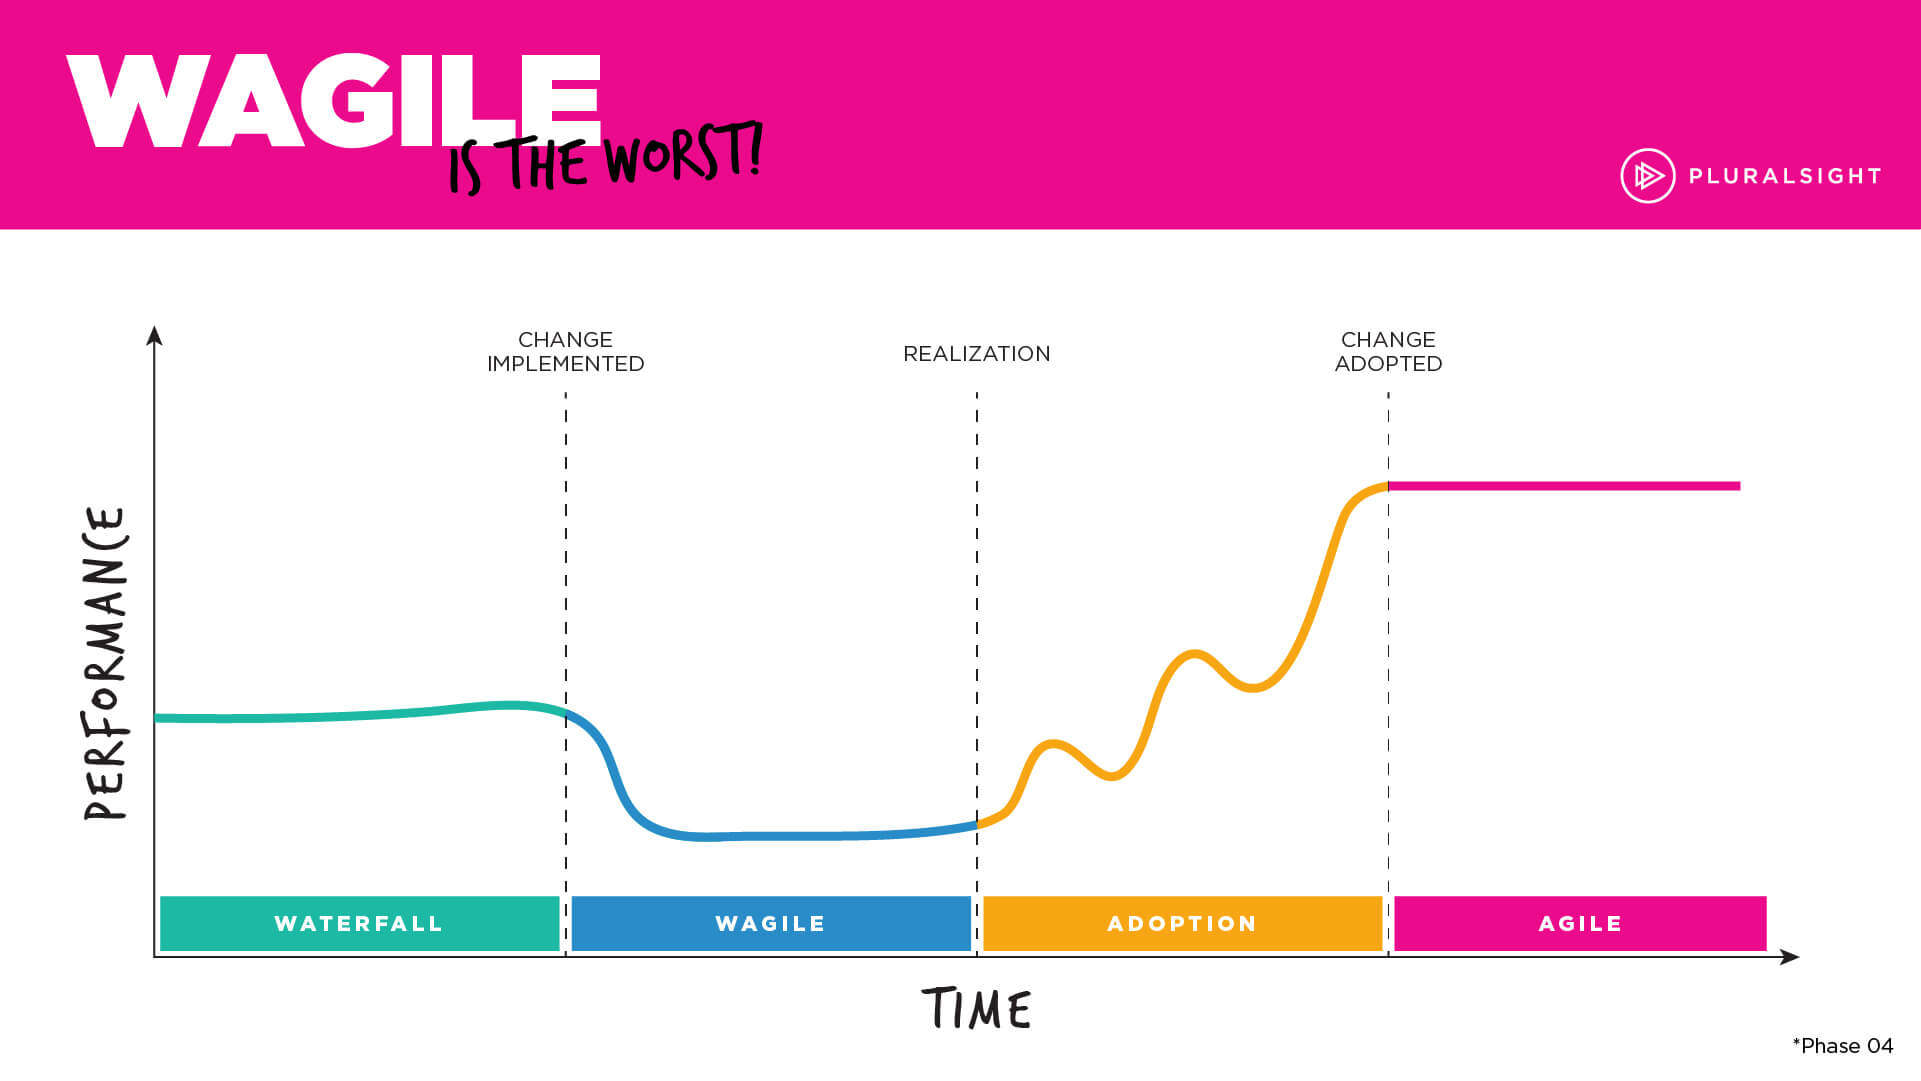 Phase 4: Transition from waterfall to agile